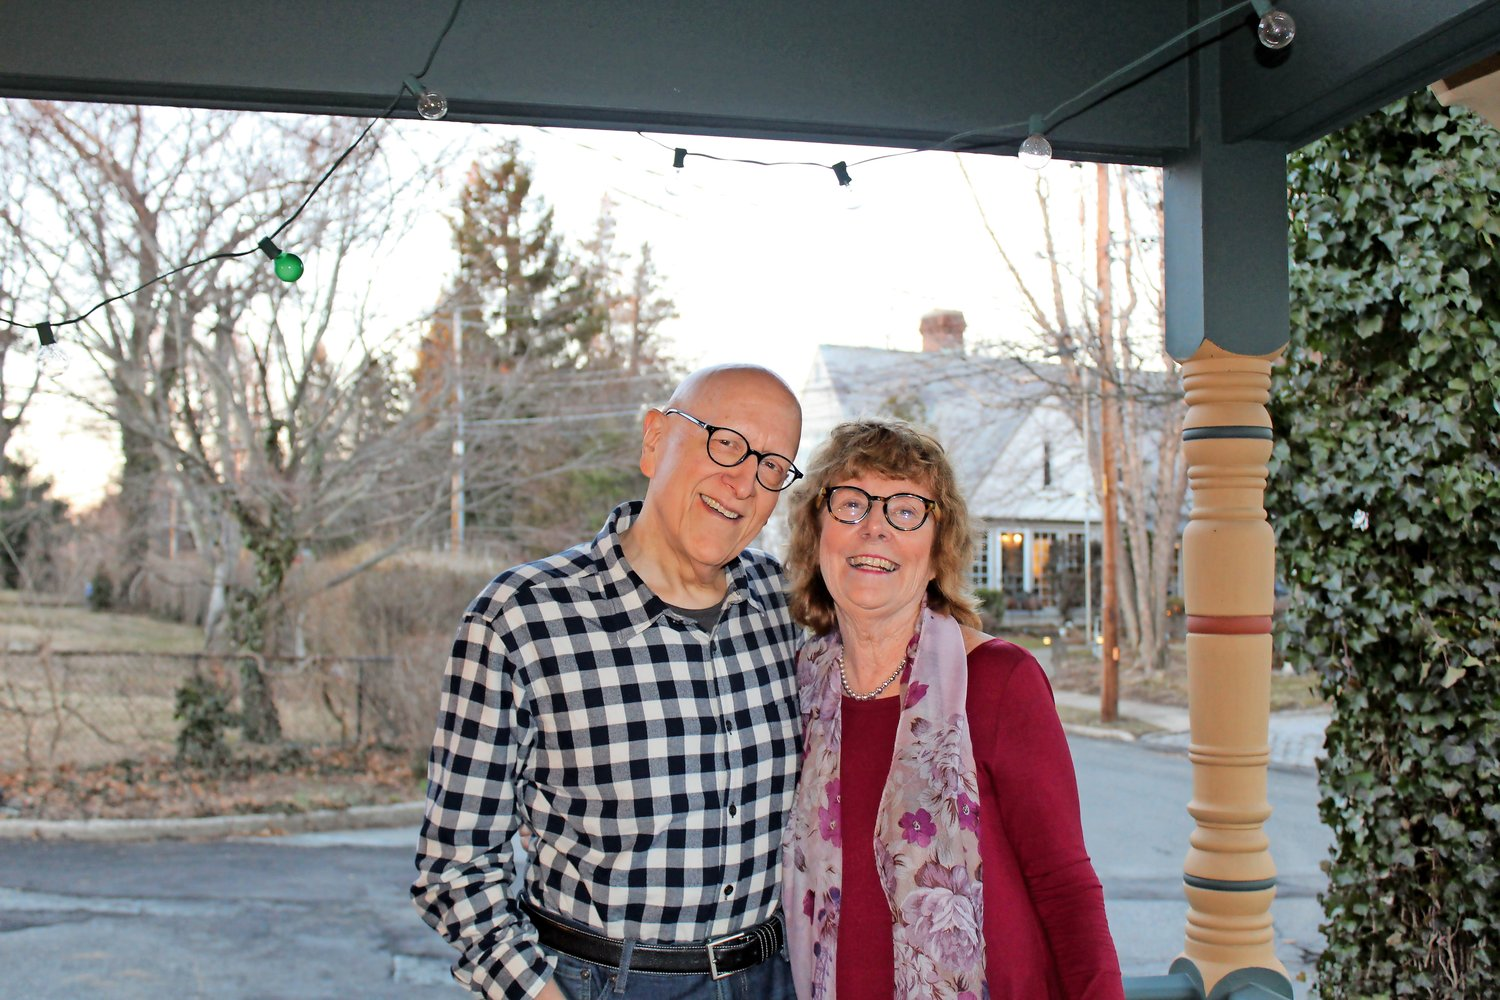 This May, longtime Sea Cliff residents Ann and Dan DiPietro will celebrate their 50th wedding anniversary.